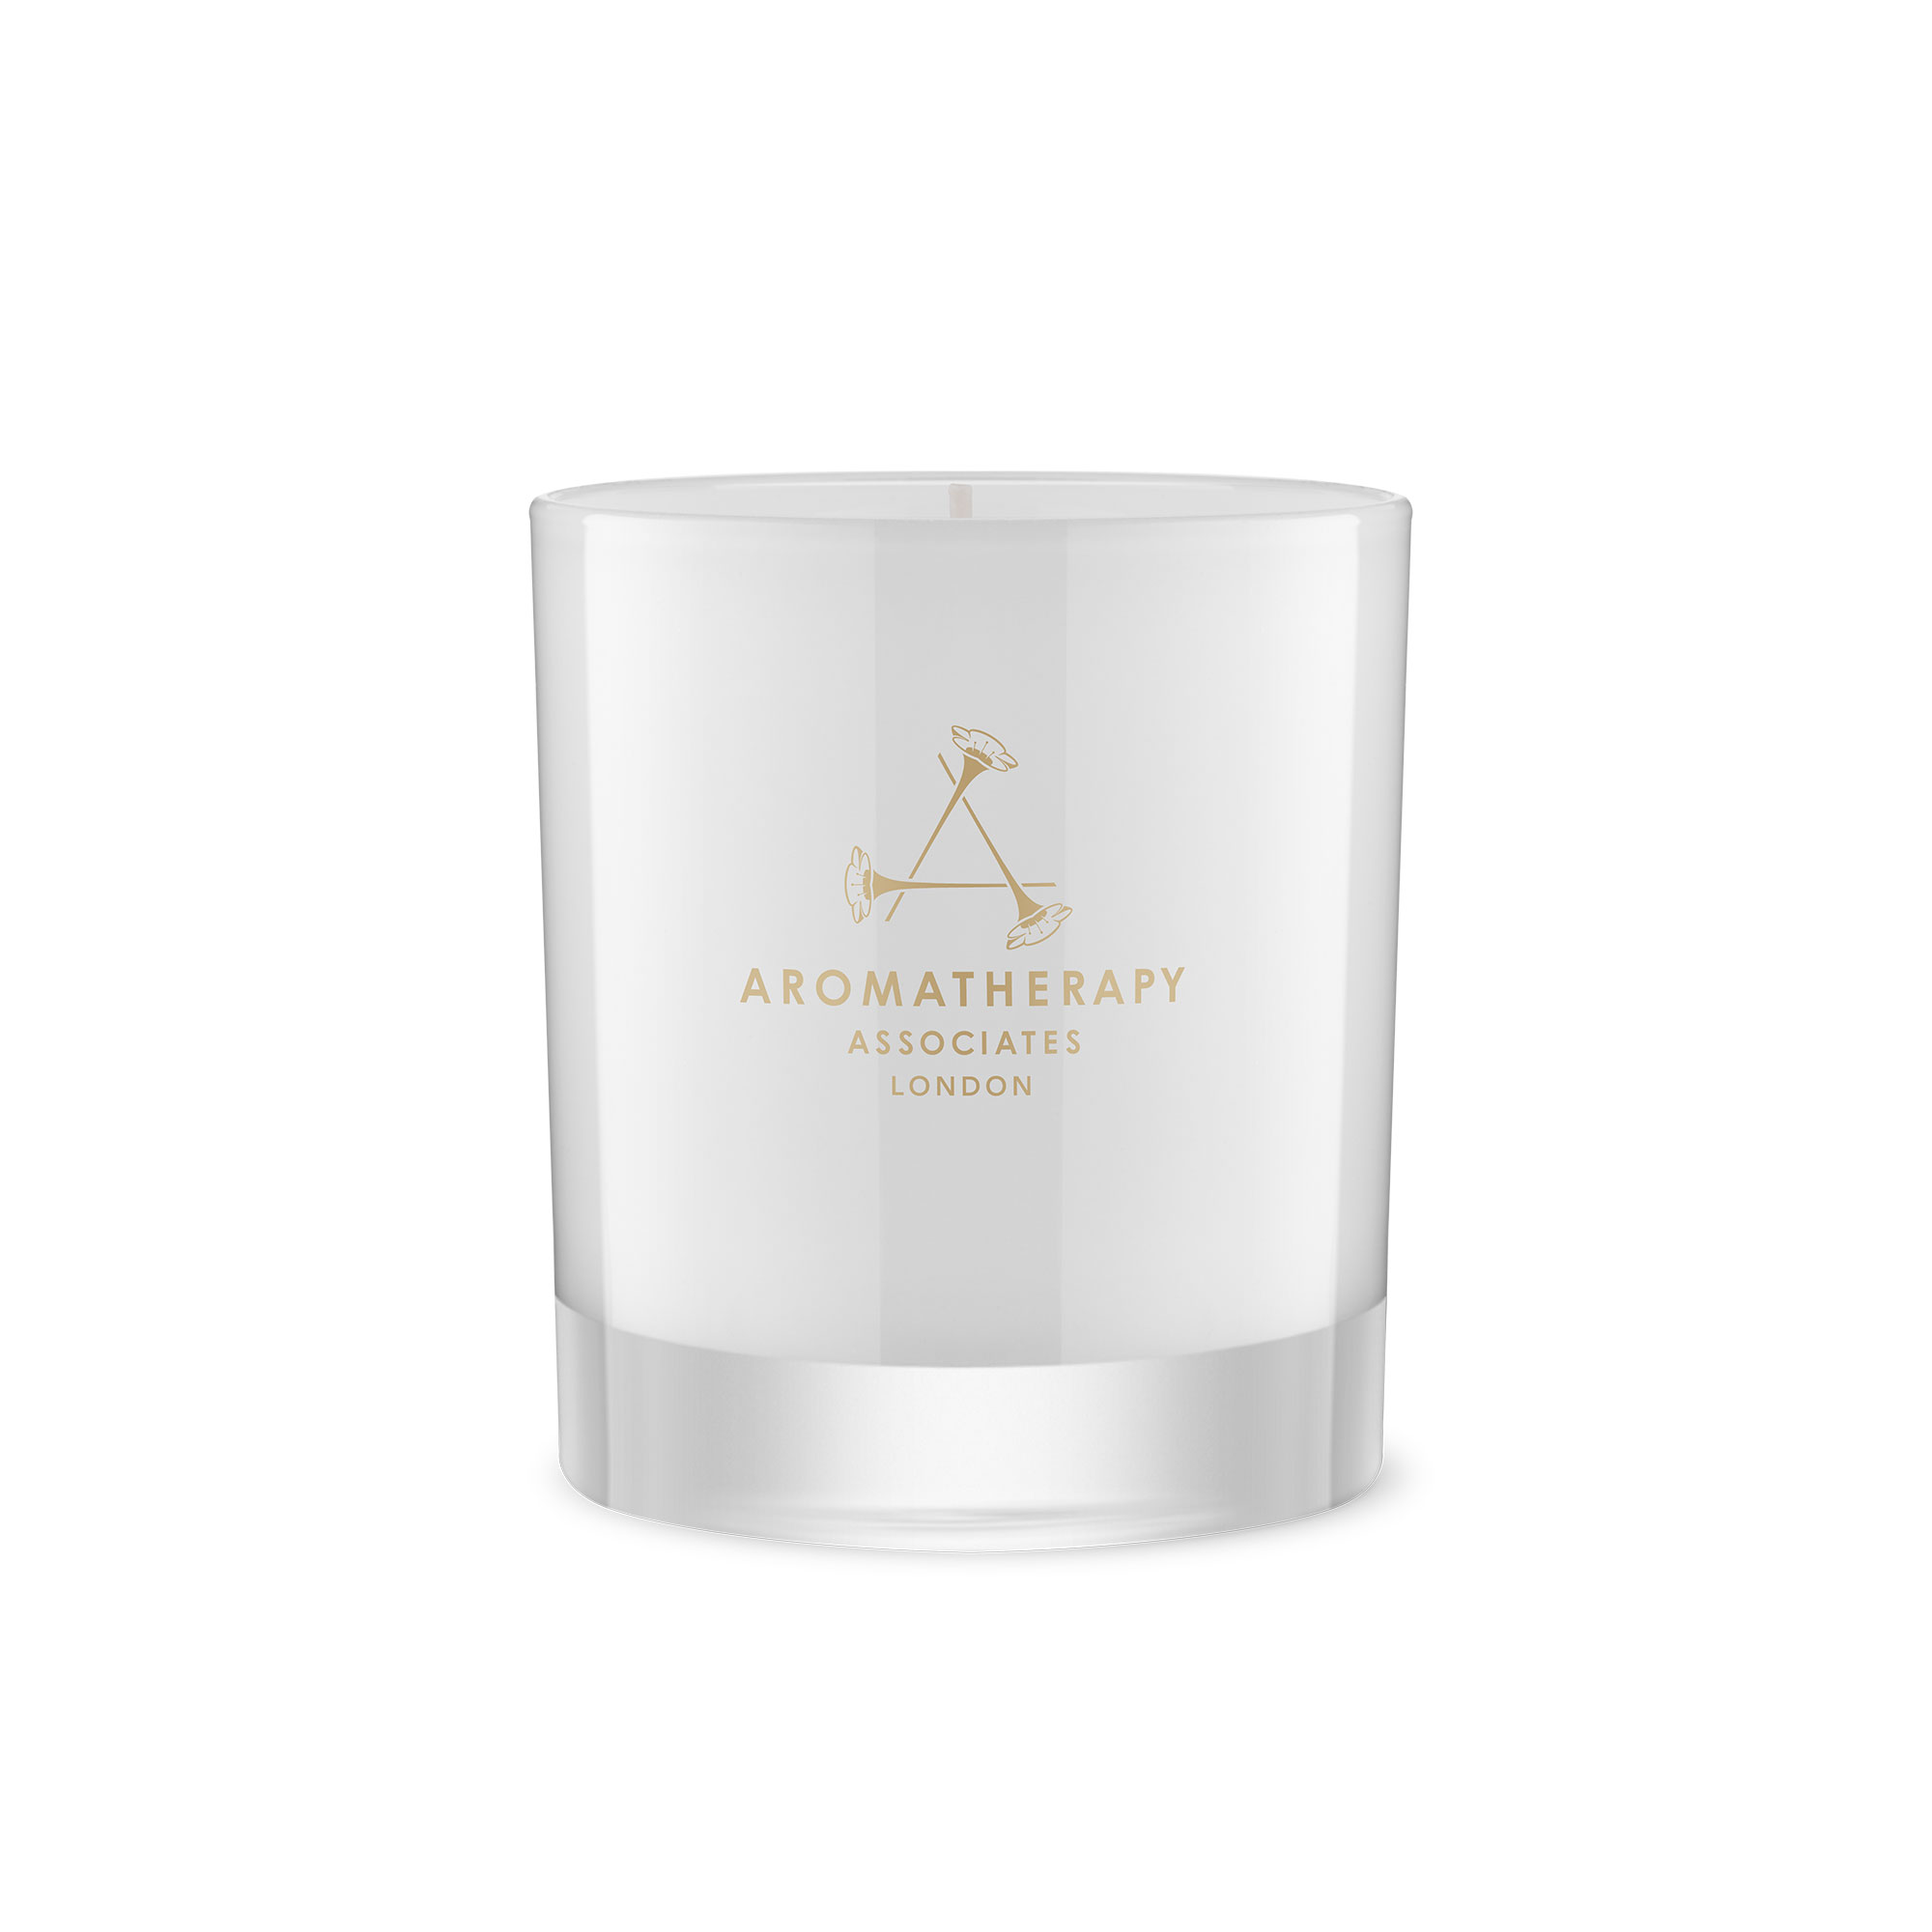 Aromatherapy Associates Relax Candle Spacenk Gbp Natural Soy Wax Scented Candles Moody Pack